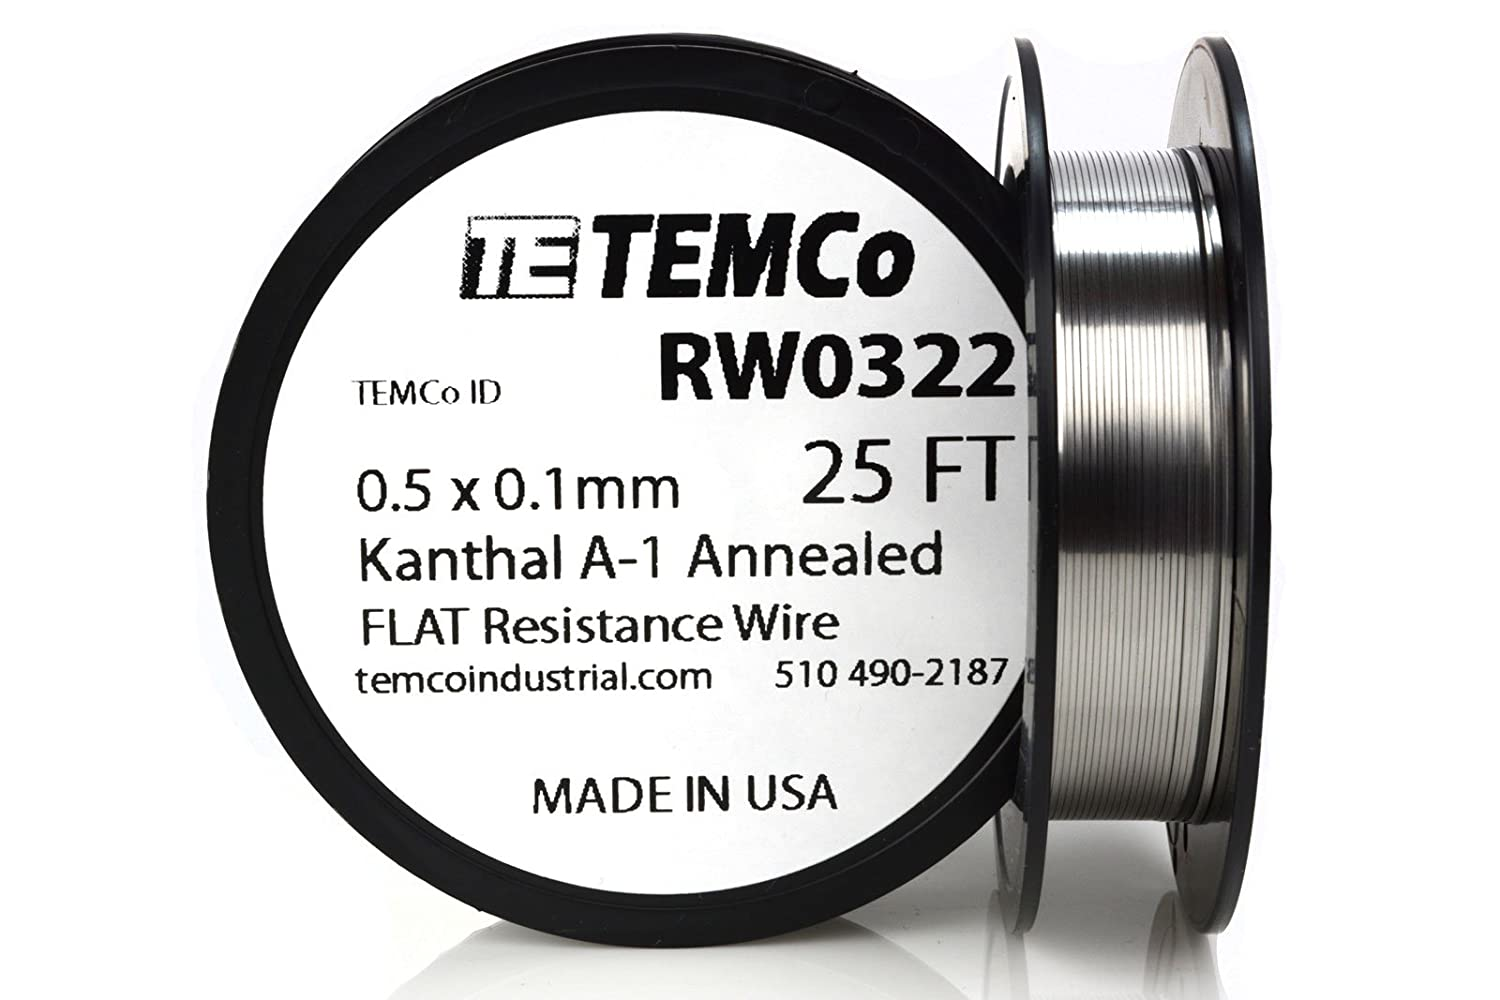 Flat wire vape benefits wire center temco flat ribbon kanthal a1 wire 0 5mm x 0 1mm 500 ft resistance a rh amazon com flat vape mod flat vape mod greentooth Image collections